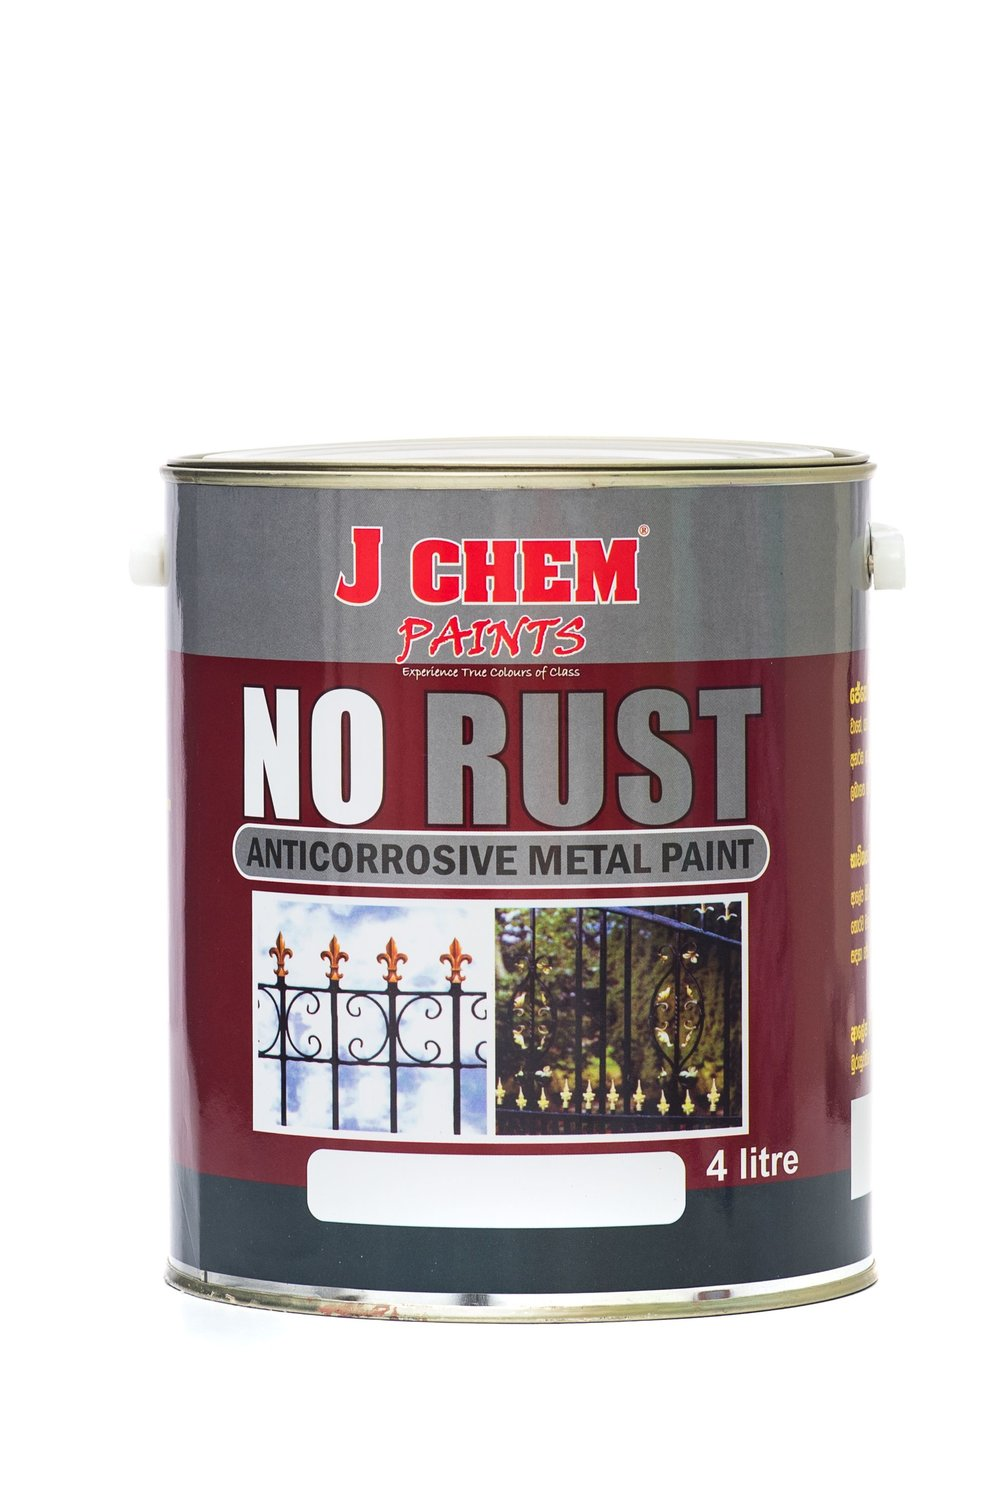 J CHEM DECORATIVE PAINTS ANTI RUST 4L.jpg